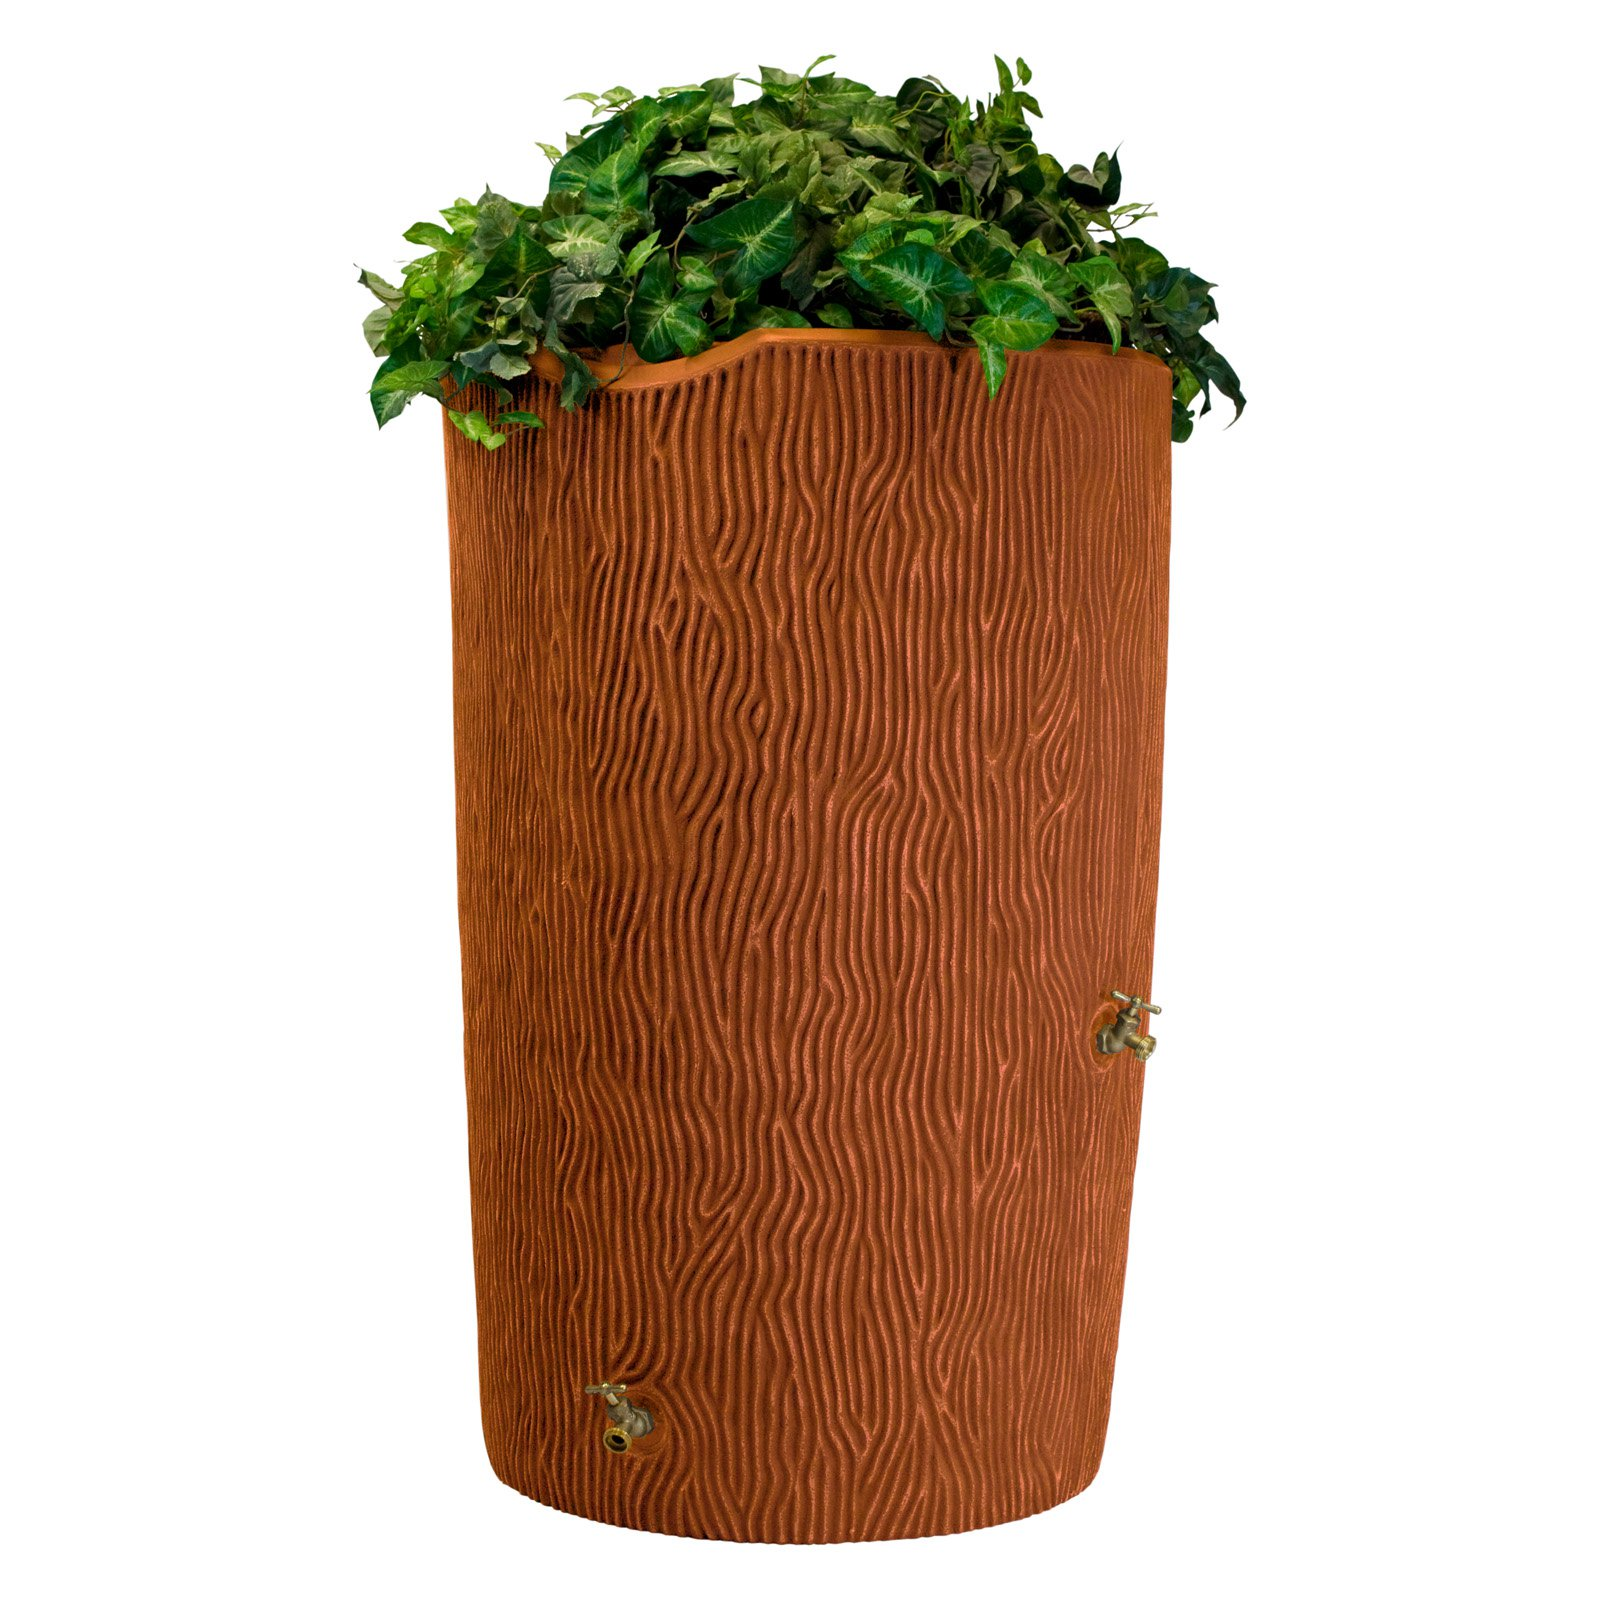 Impressions 90-Gallon Bark Rain Saver, Terra Cotta